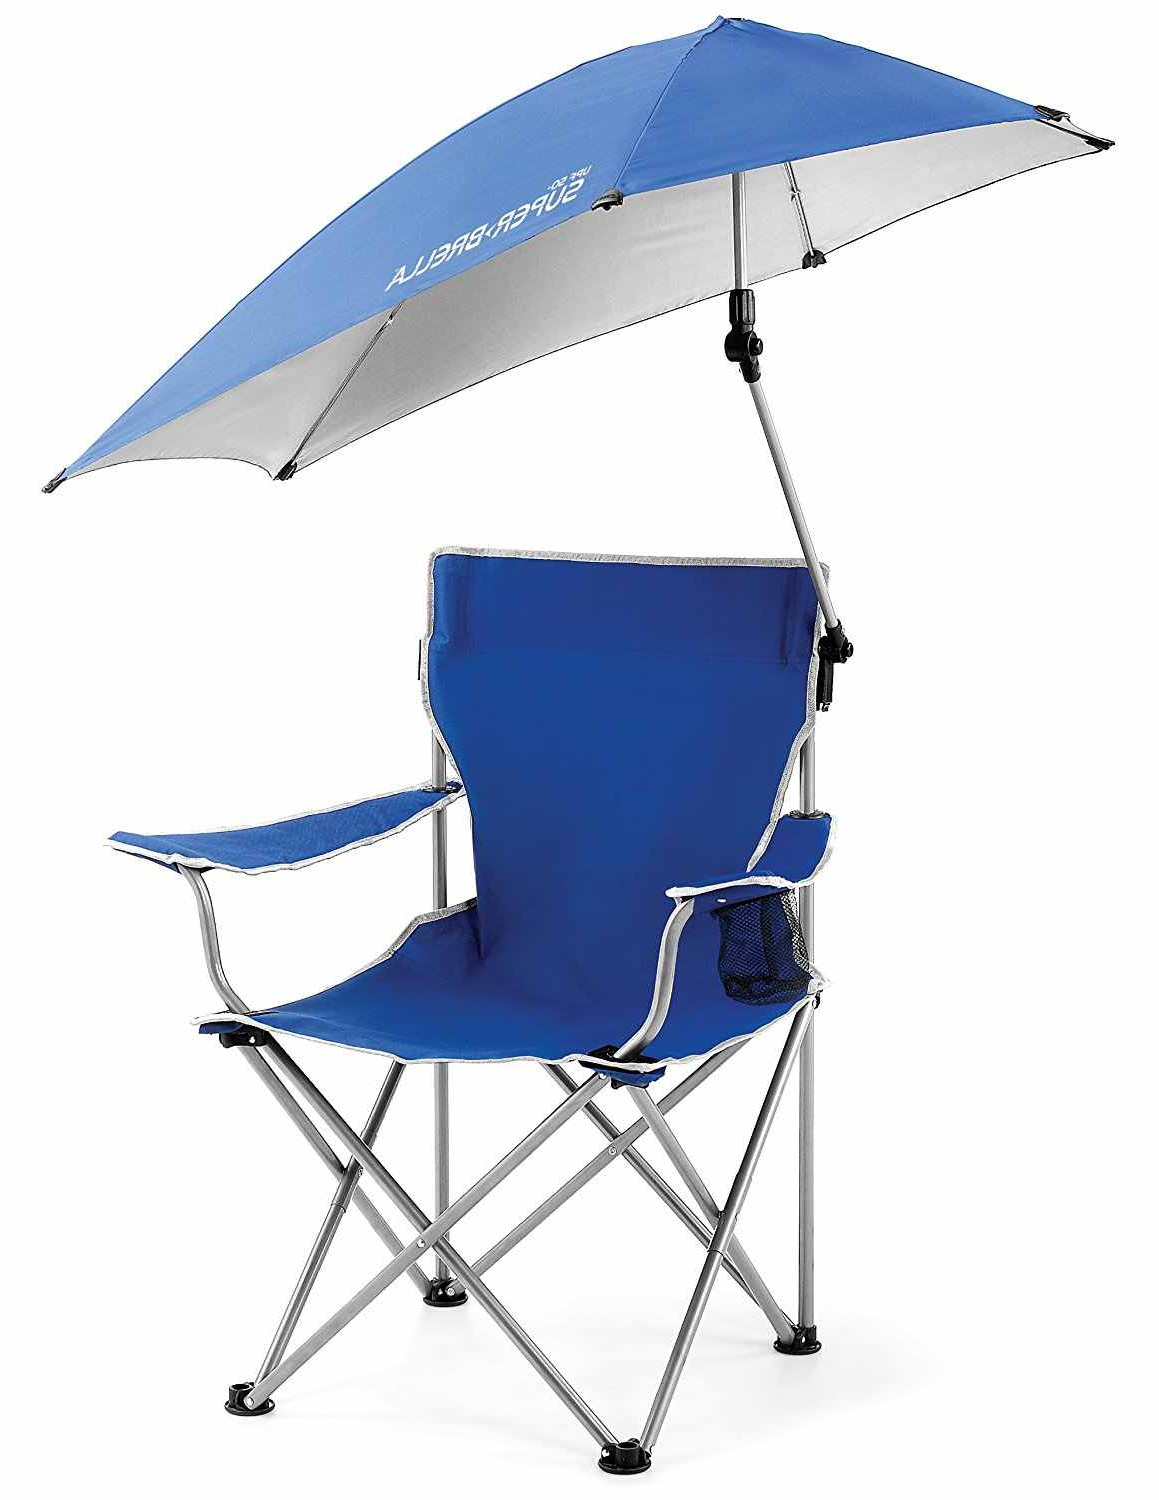 Outdoor Quik Shade Adjustable Canopy Folding Camp Chair Inside Famous Portable Extendable Folding Reclining Chairs (Gallery 25 of 25)